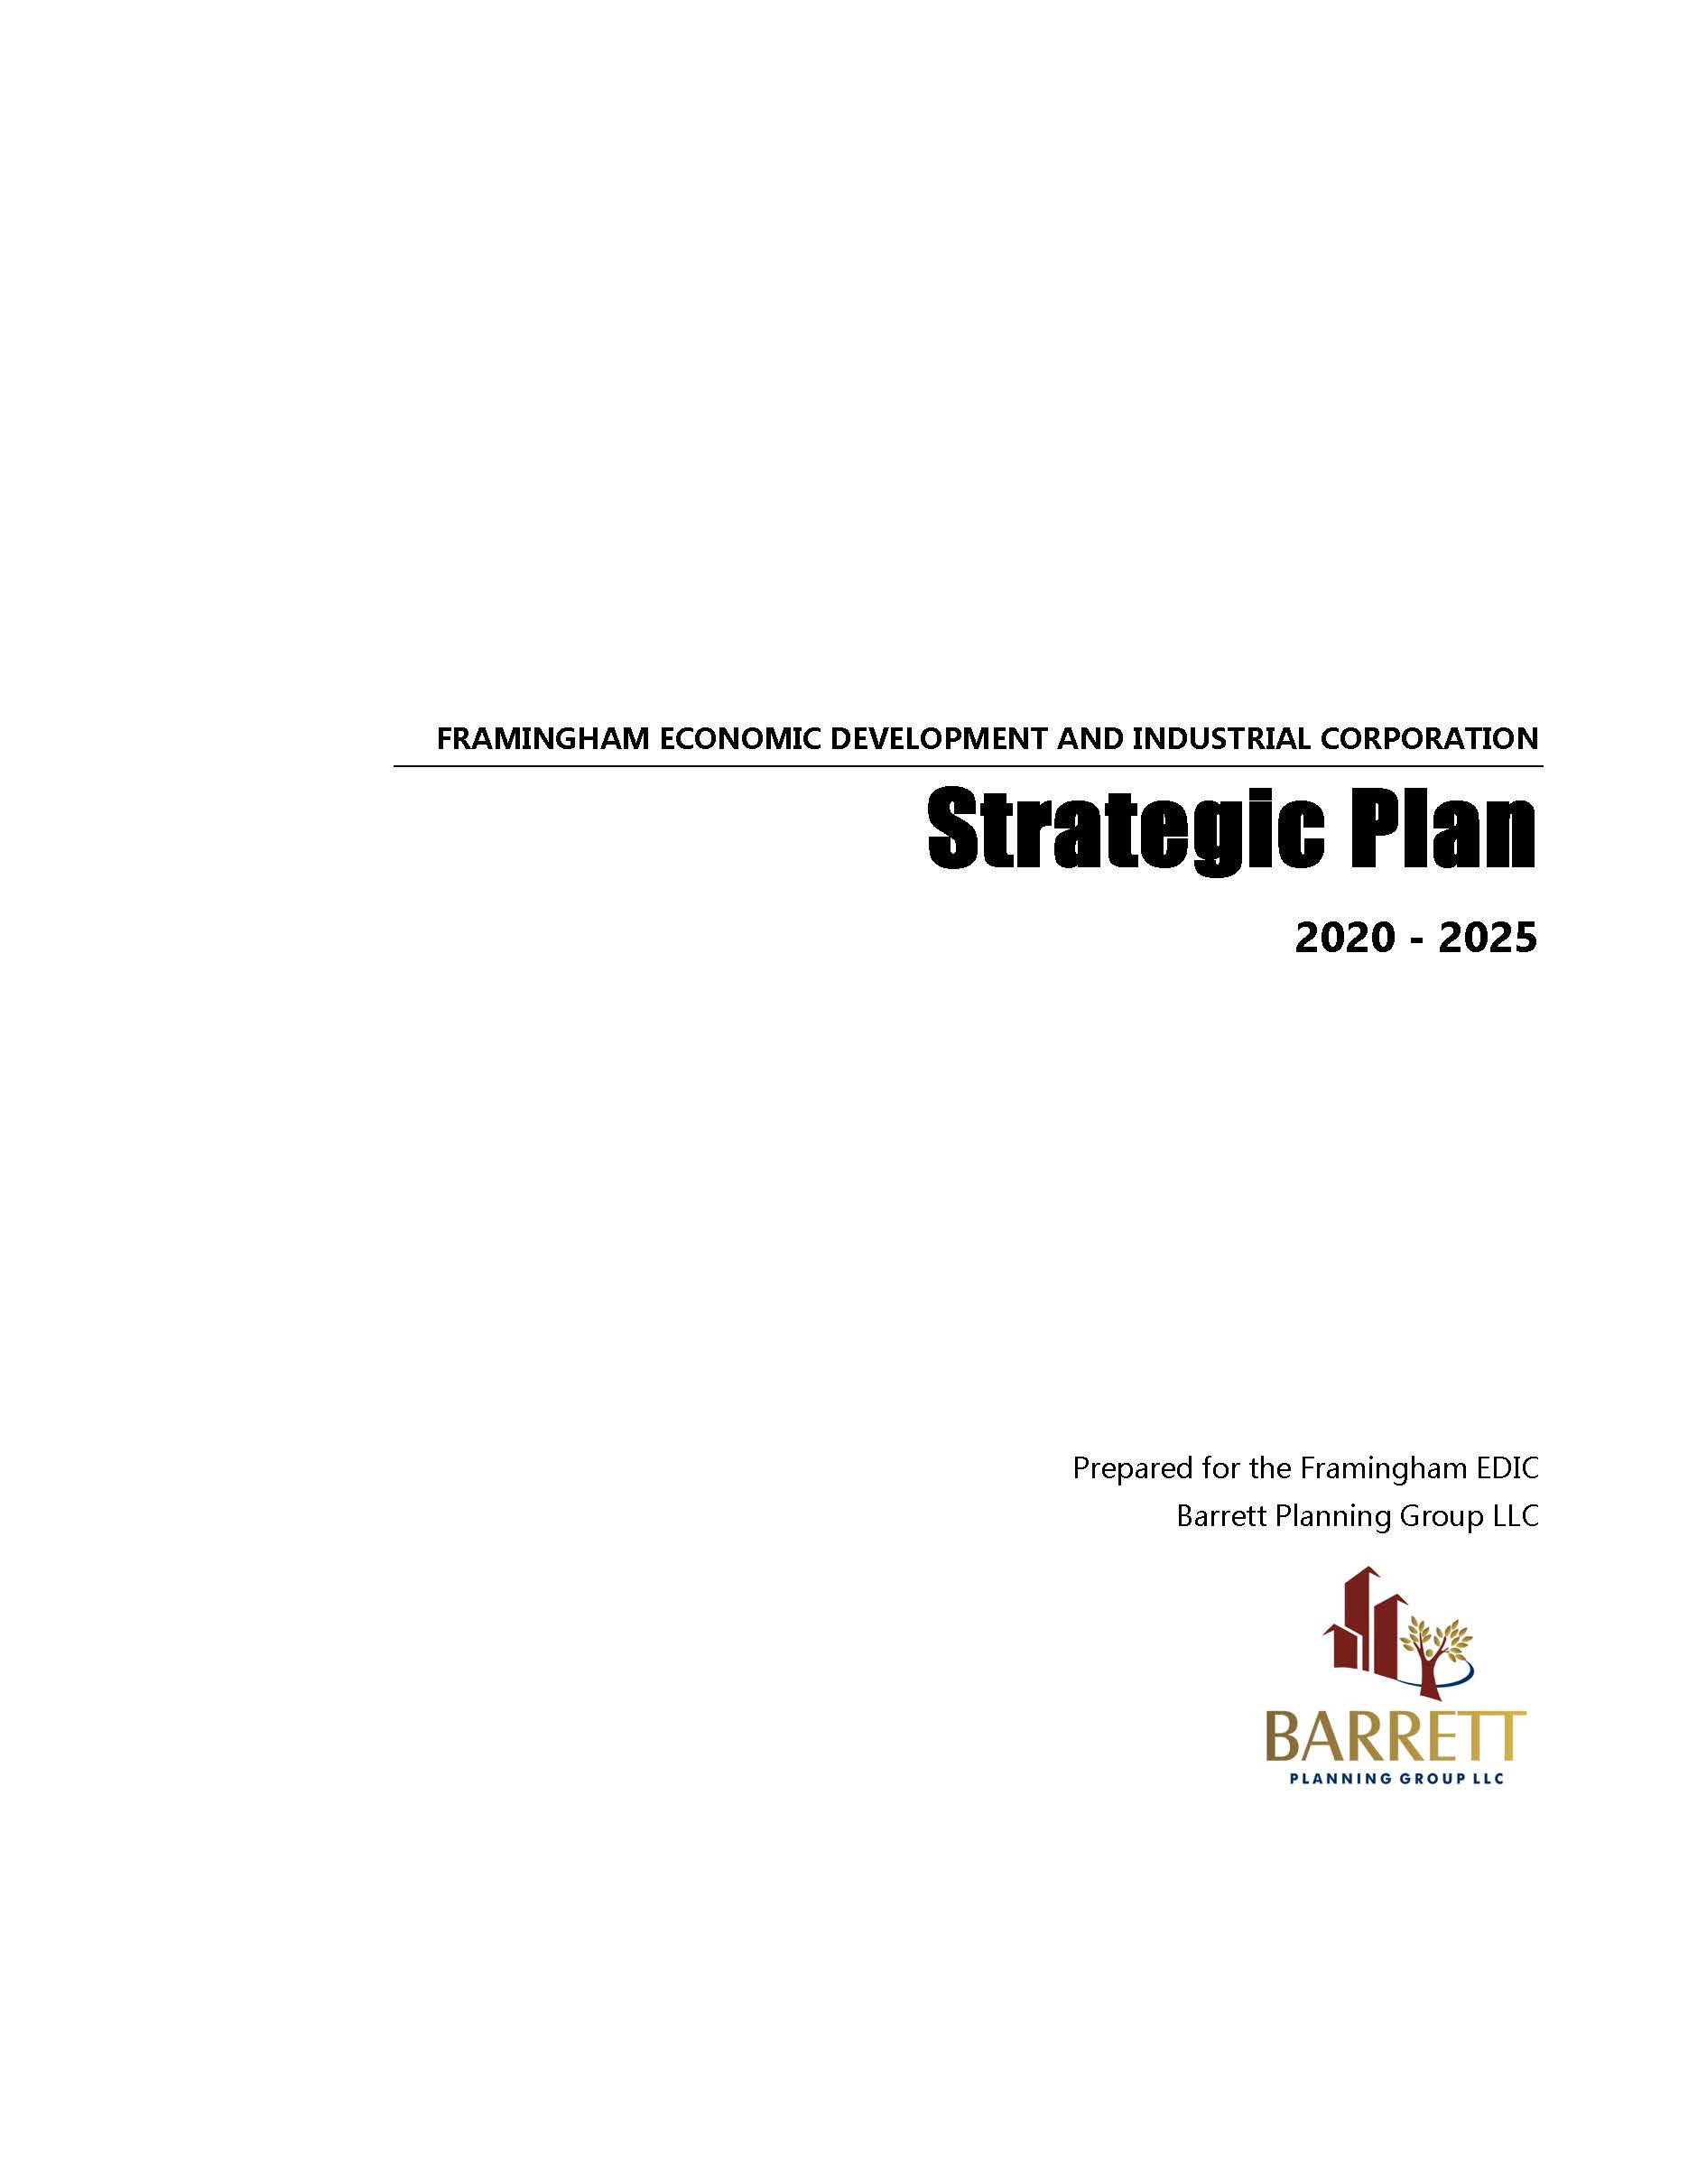 Framingham EDIC Strategic Plan 2020-FINAL-COVER